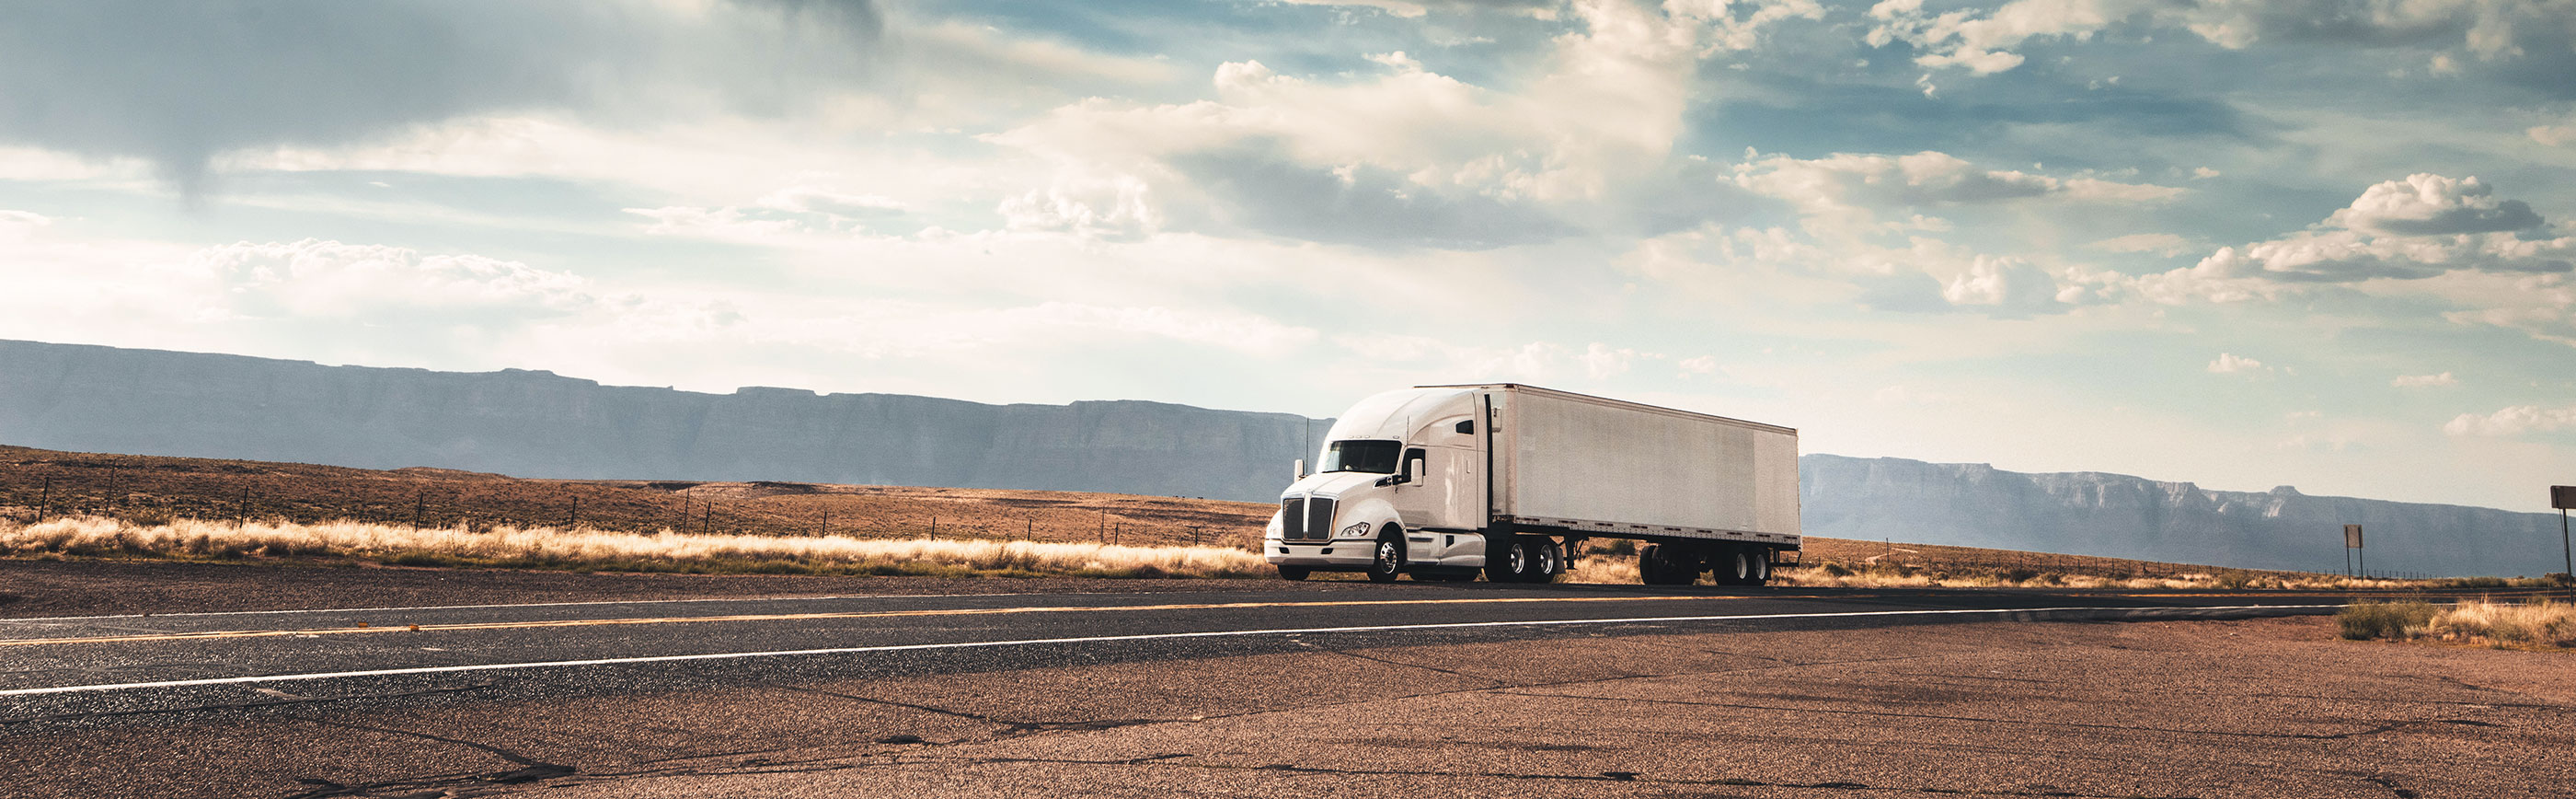 Trucking & carrier services